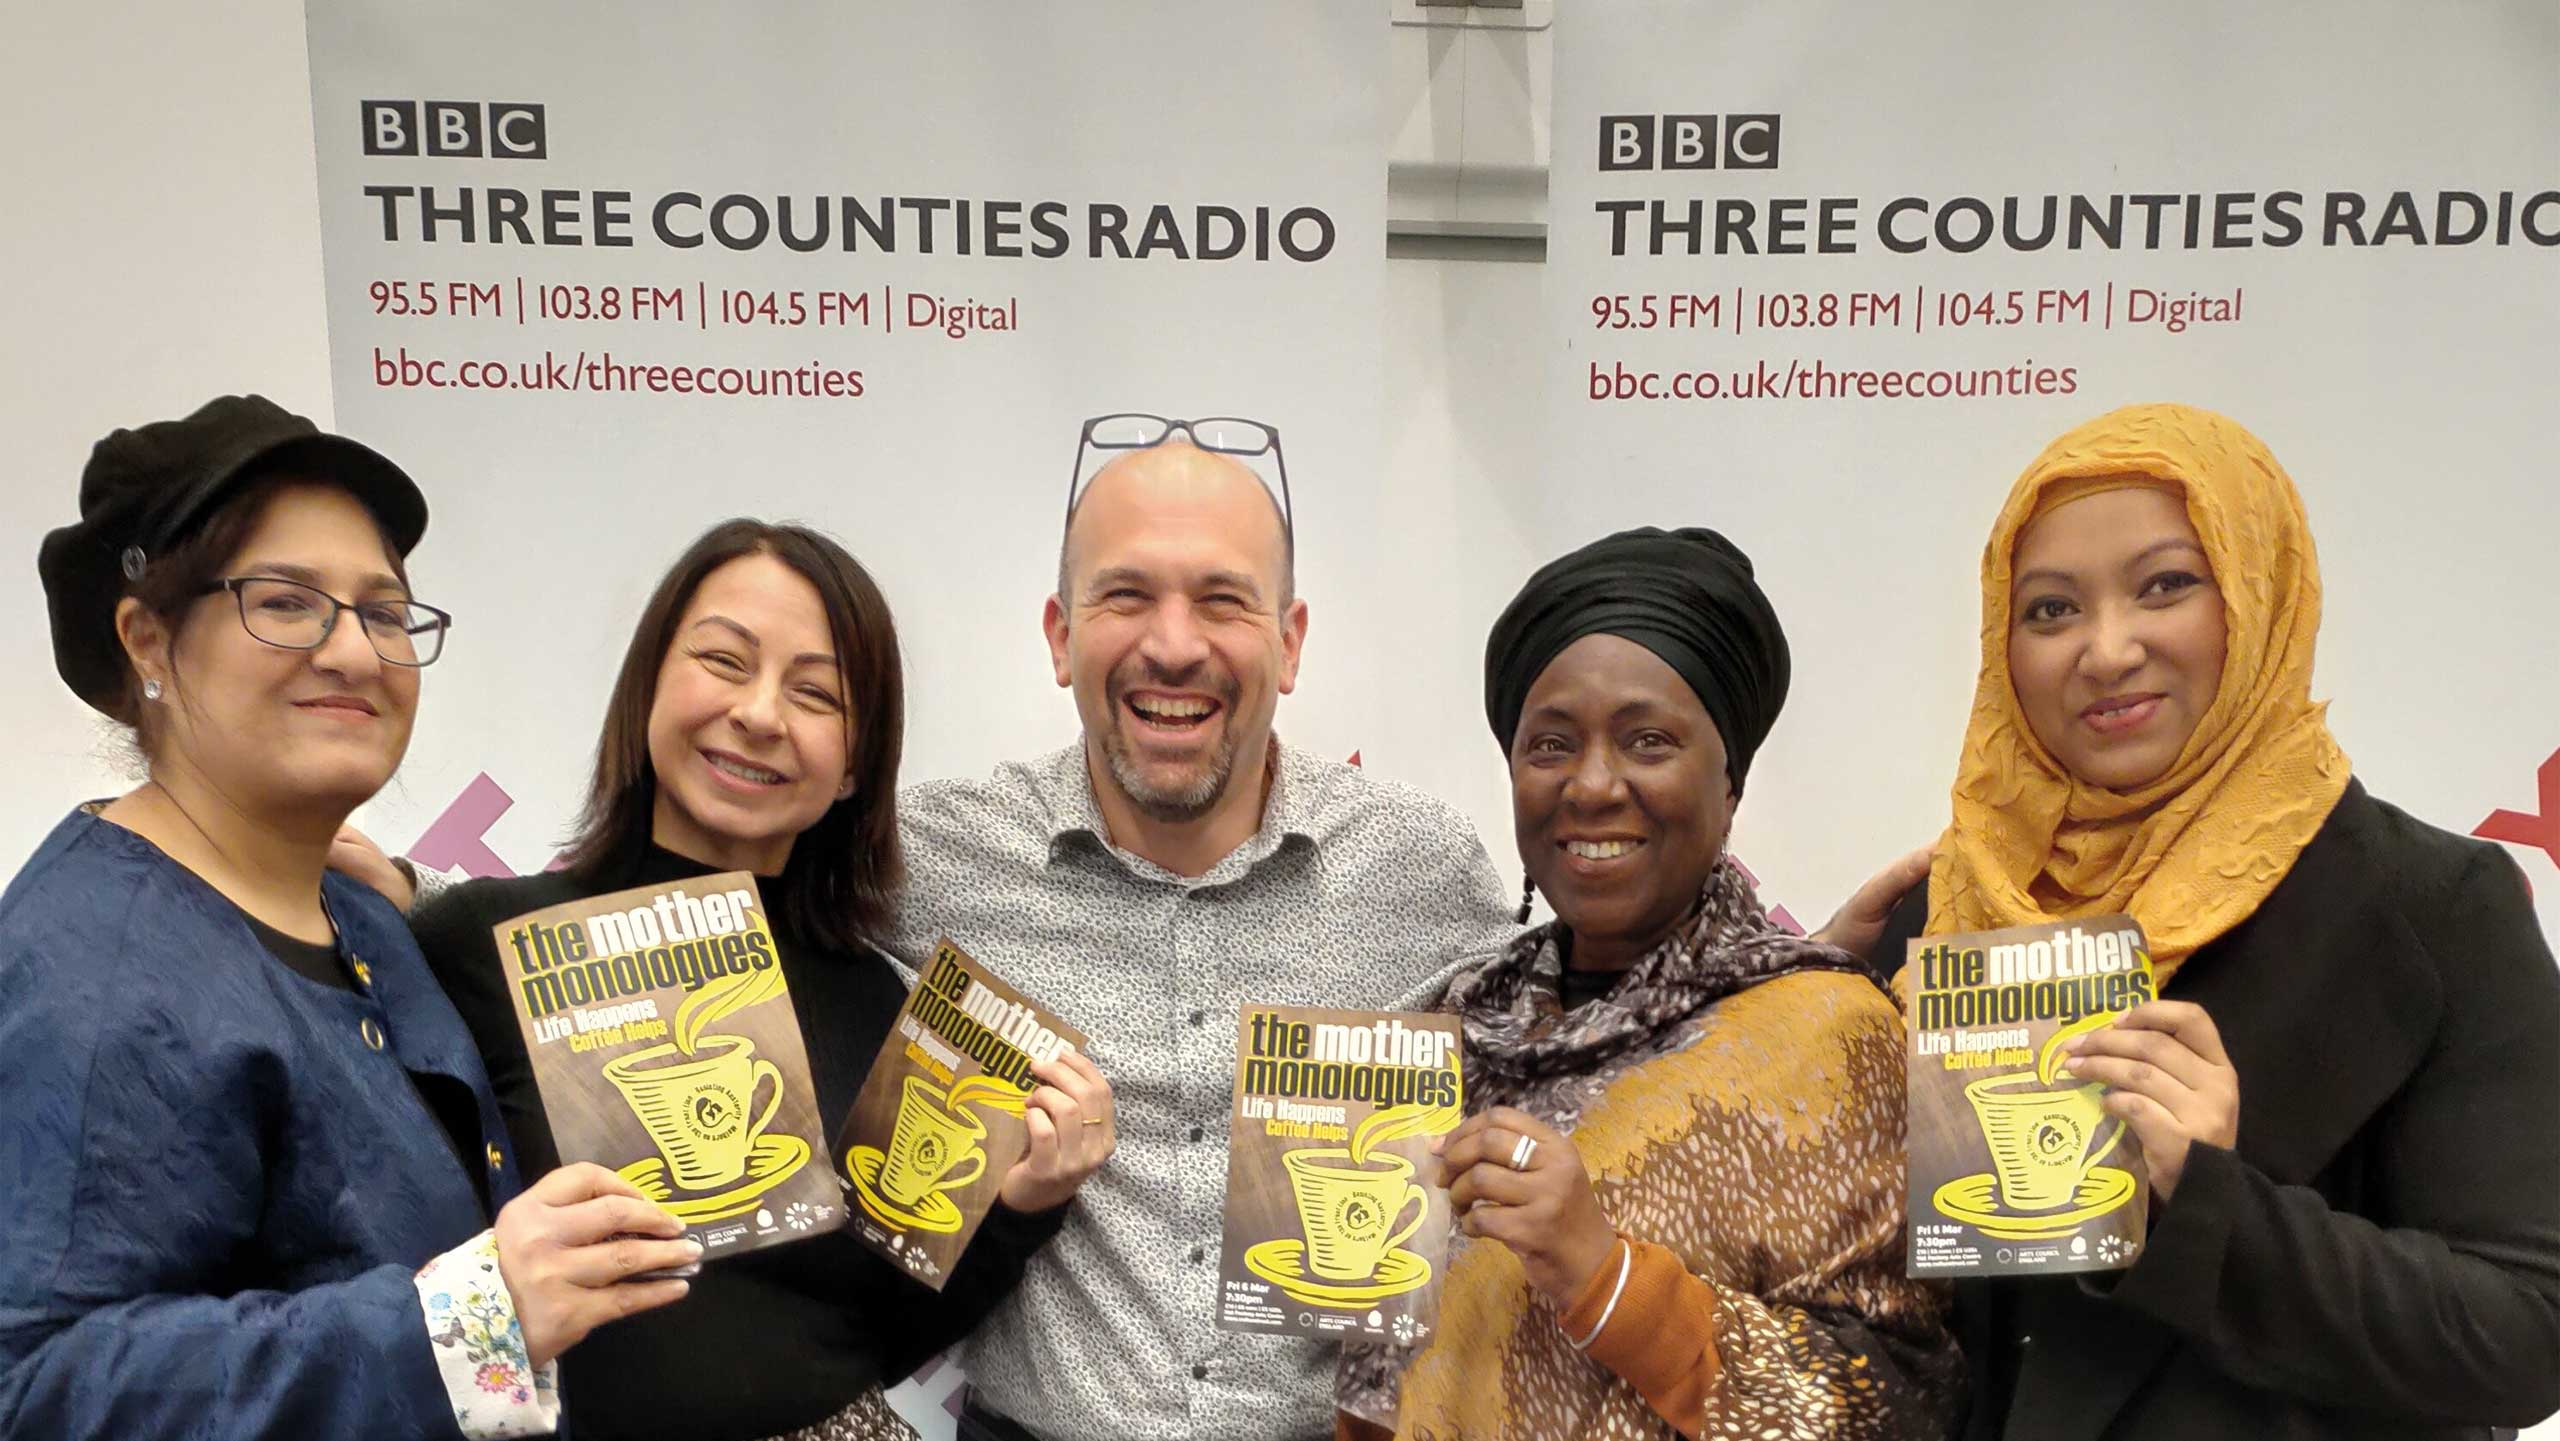 Image of mothers who are part of the mothers monalogue at BBC 3 counties radio